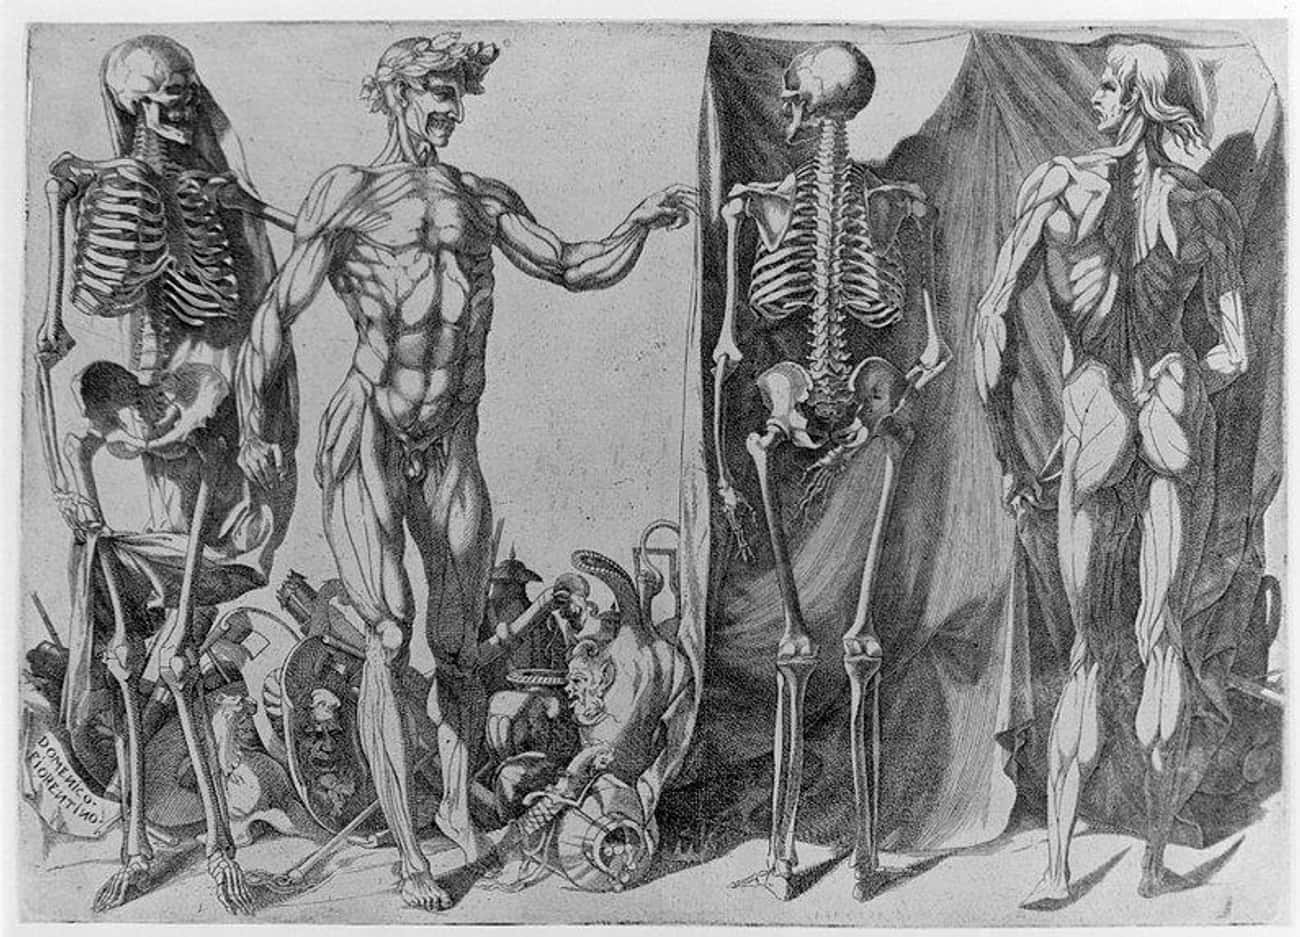 Renaissance Artists Had To Loo is listed (or ranked) 1 on the list Turns Out Michelangelo And Da Vinci Trafficked Dead Bodies For Their Art